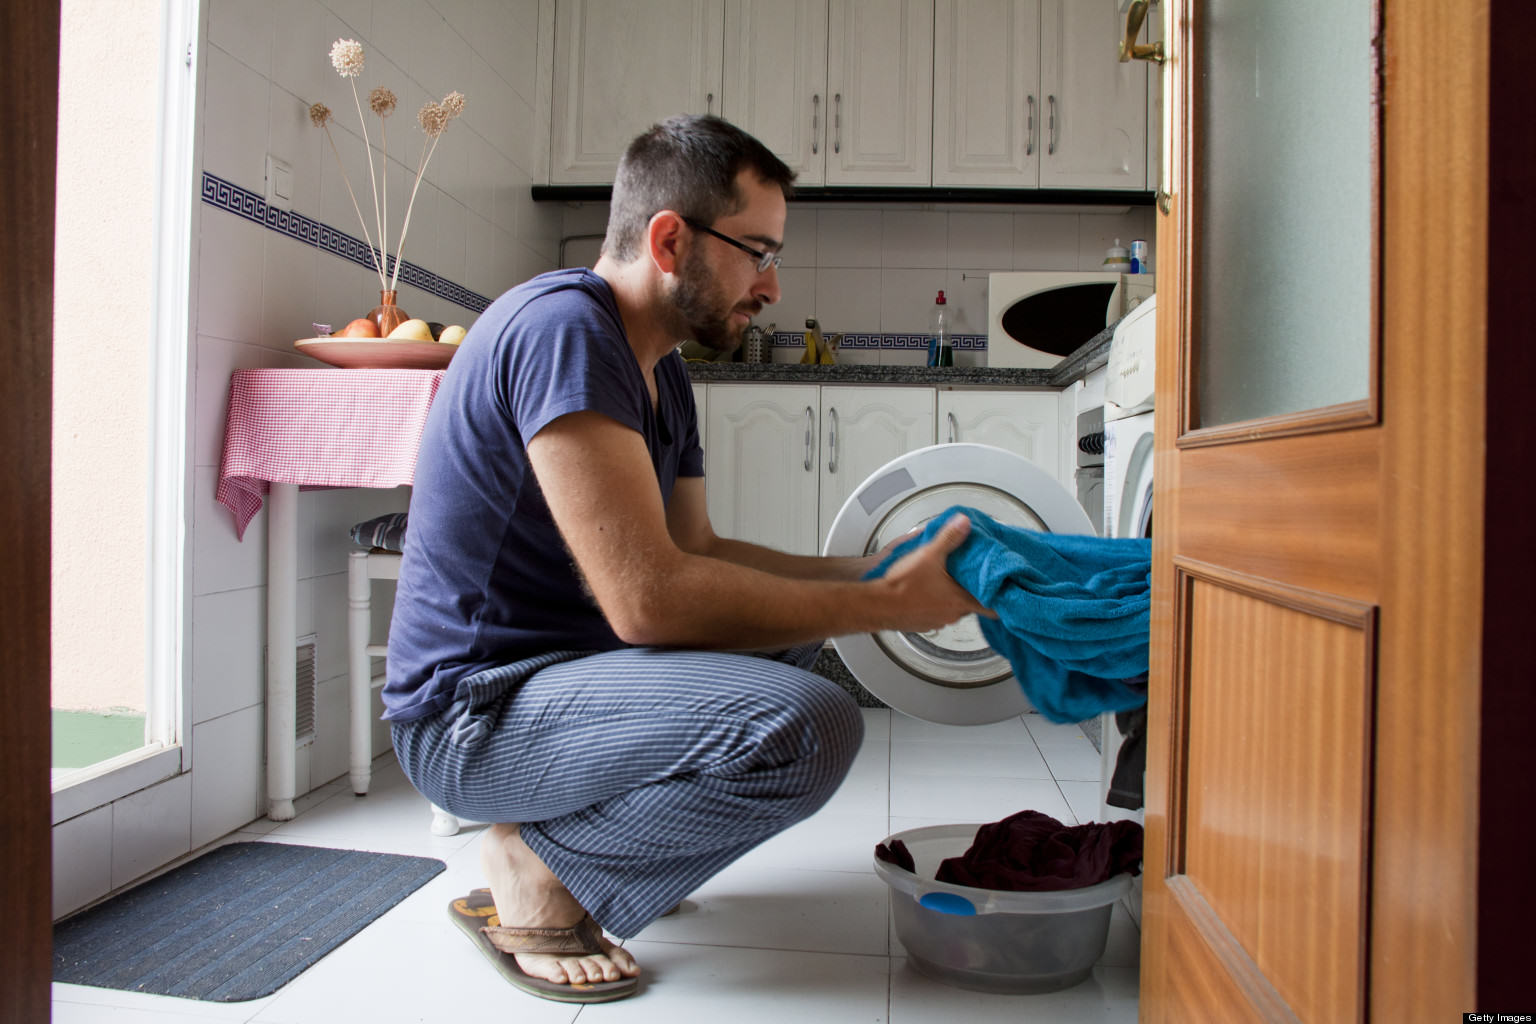 UNILAD o MAN DOING LAUNDRY getty6 Canadian Man Breaks Into House, Does Laundry And Feeds Cats